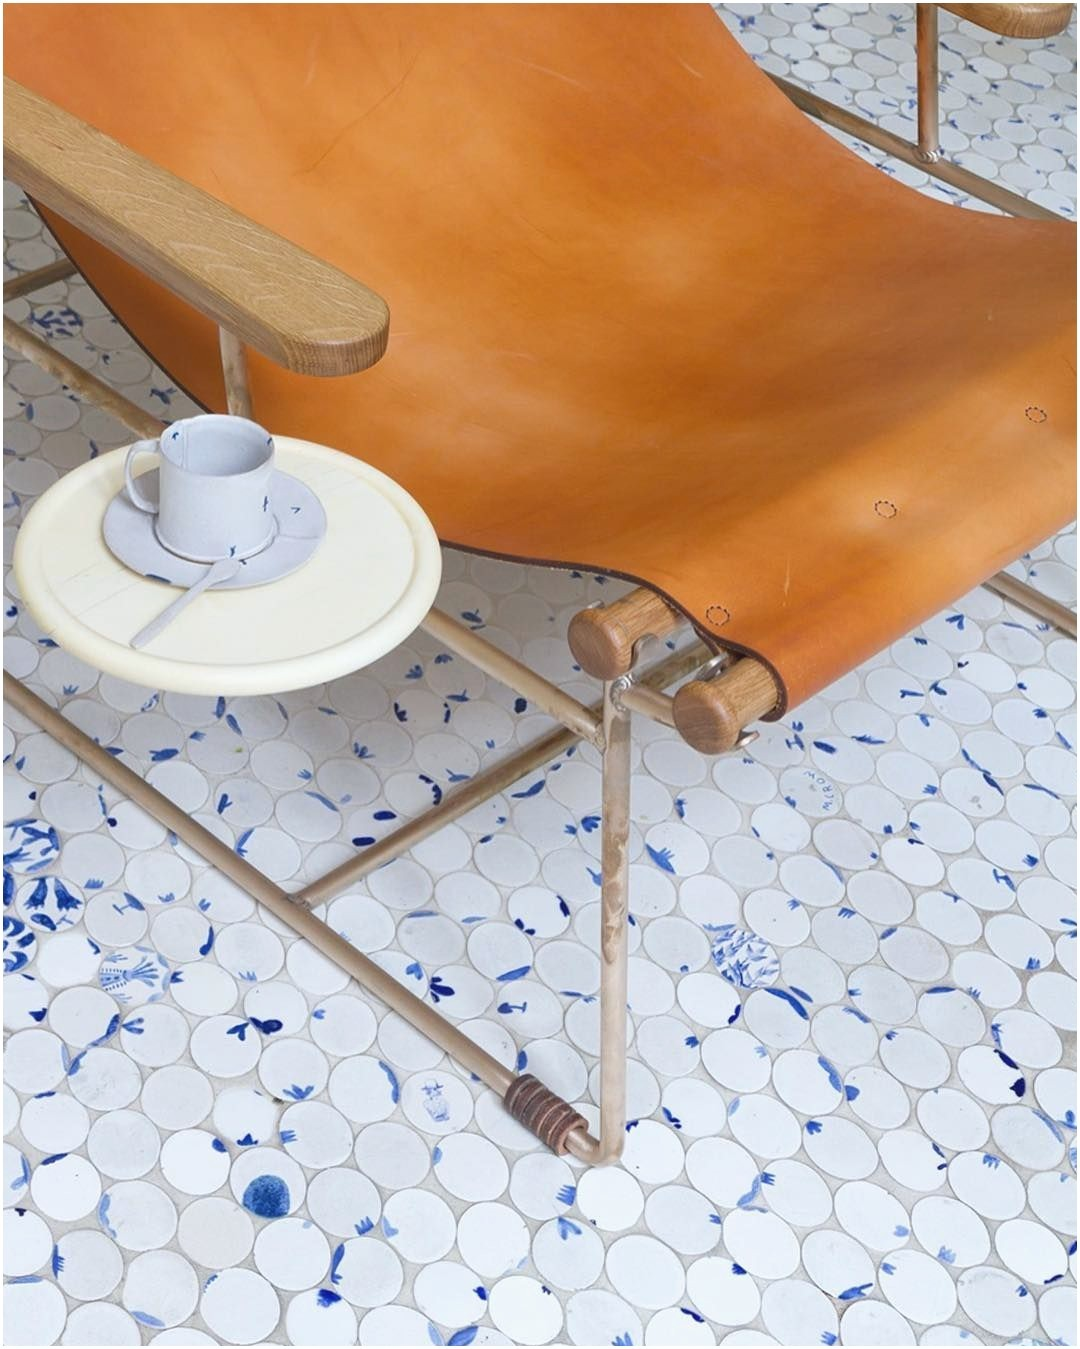 What Kind Of Paint To Use On Ceramic Tiles